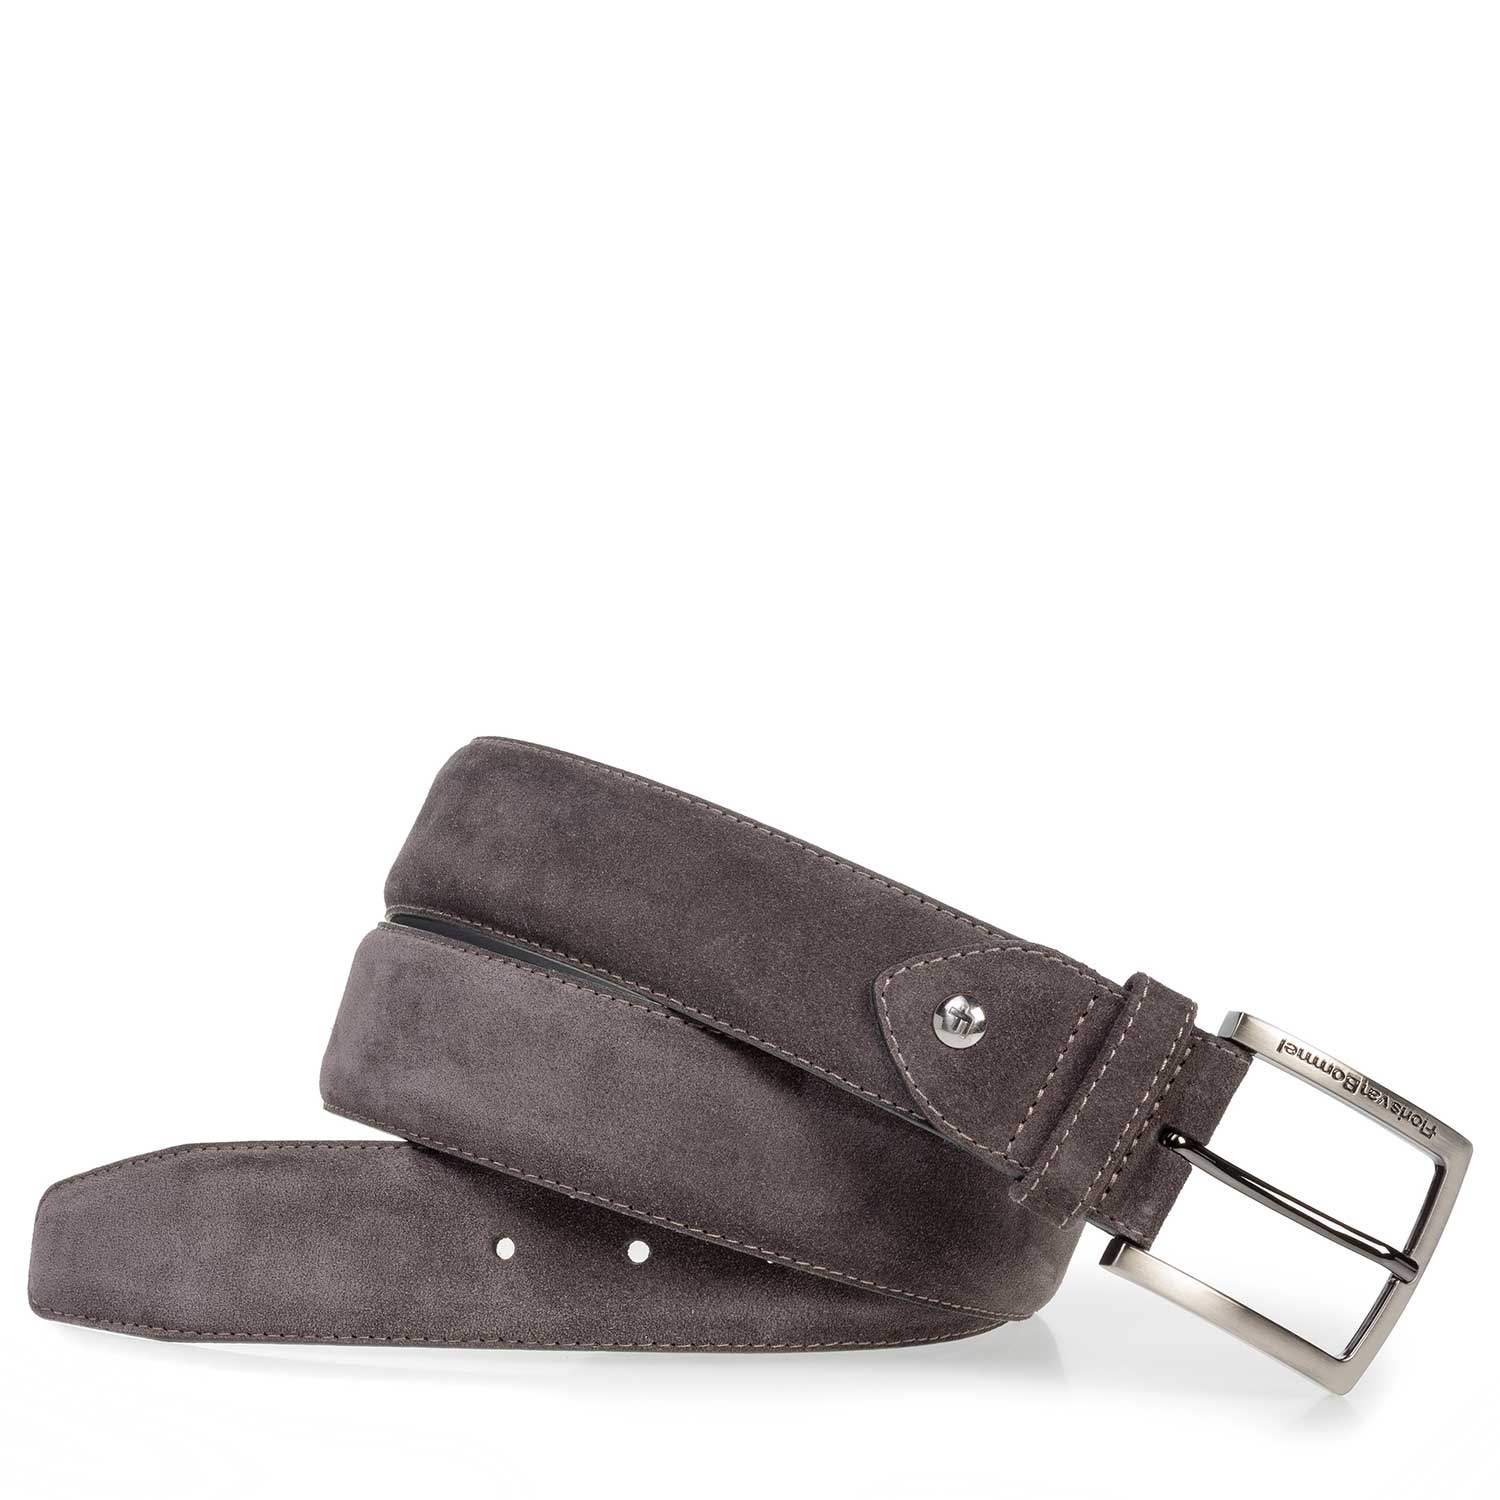 75202/06 - Anthracite and brown suede leather belt